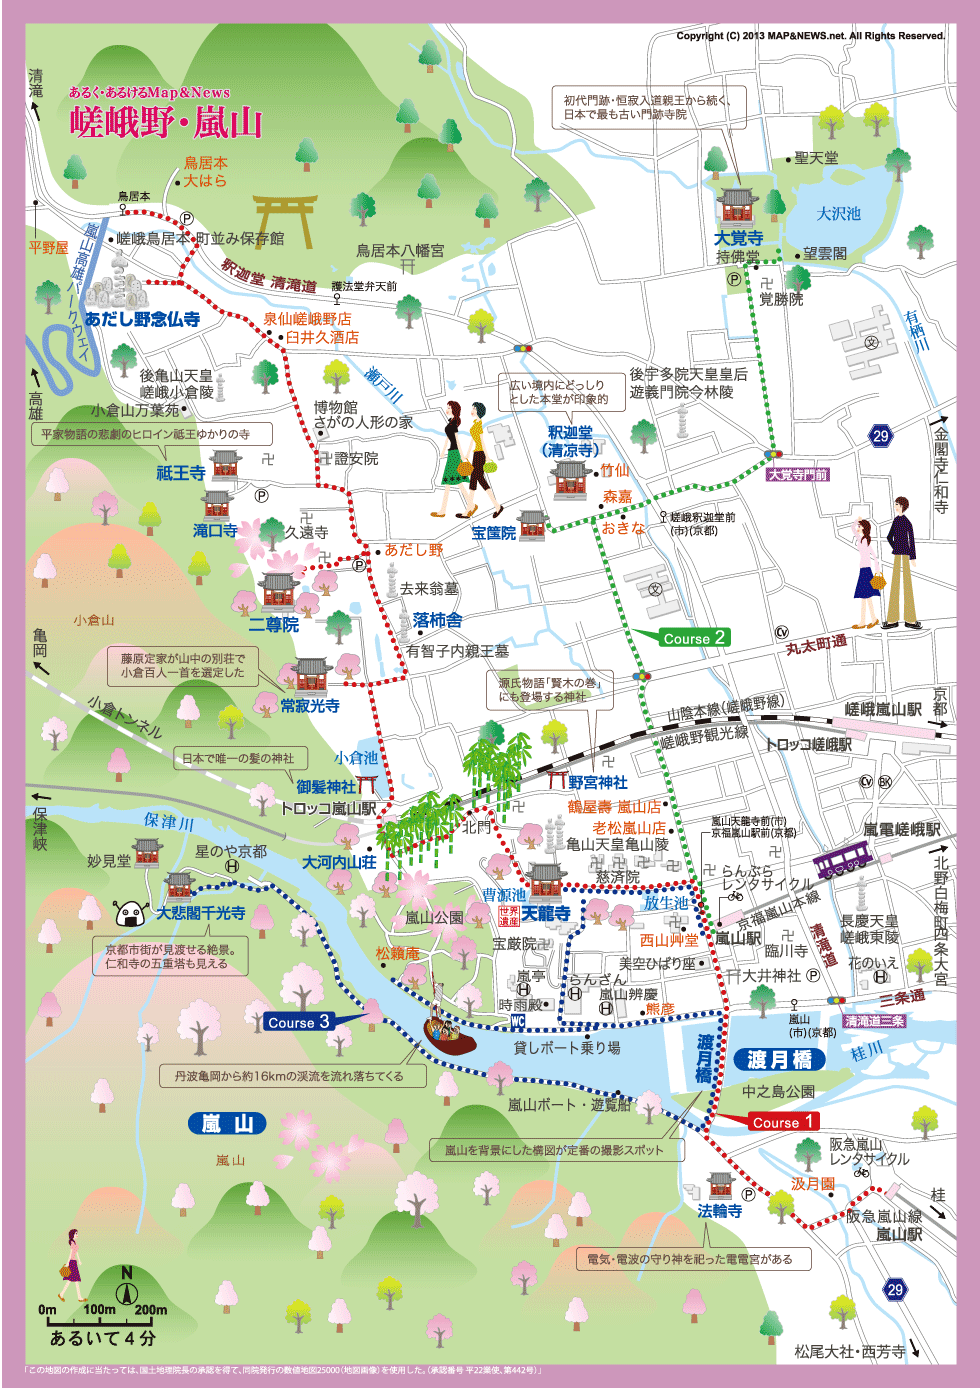 Download Kyoto maps - youinjapan.net on kamakura map, taipei map, honshu map, nara map, chang'an map, kyushu map, hangzhou map, seoul map, yokohama map, hanoi map, shikoku map, lima map, japanese alps map, japan map, agra map, hong kong map, lhasa map, mombasa map, okinawa map, osaka map,